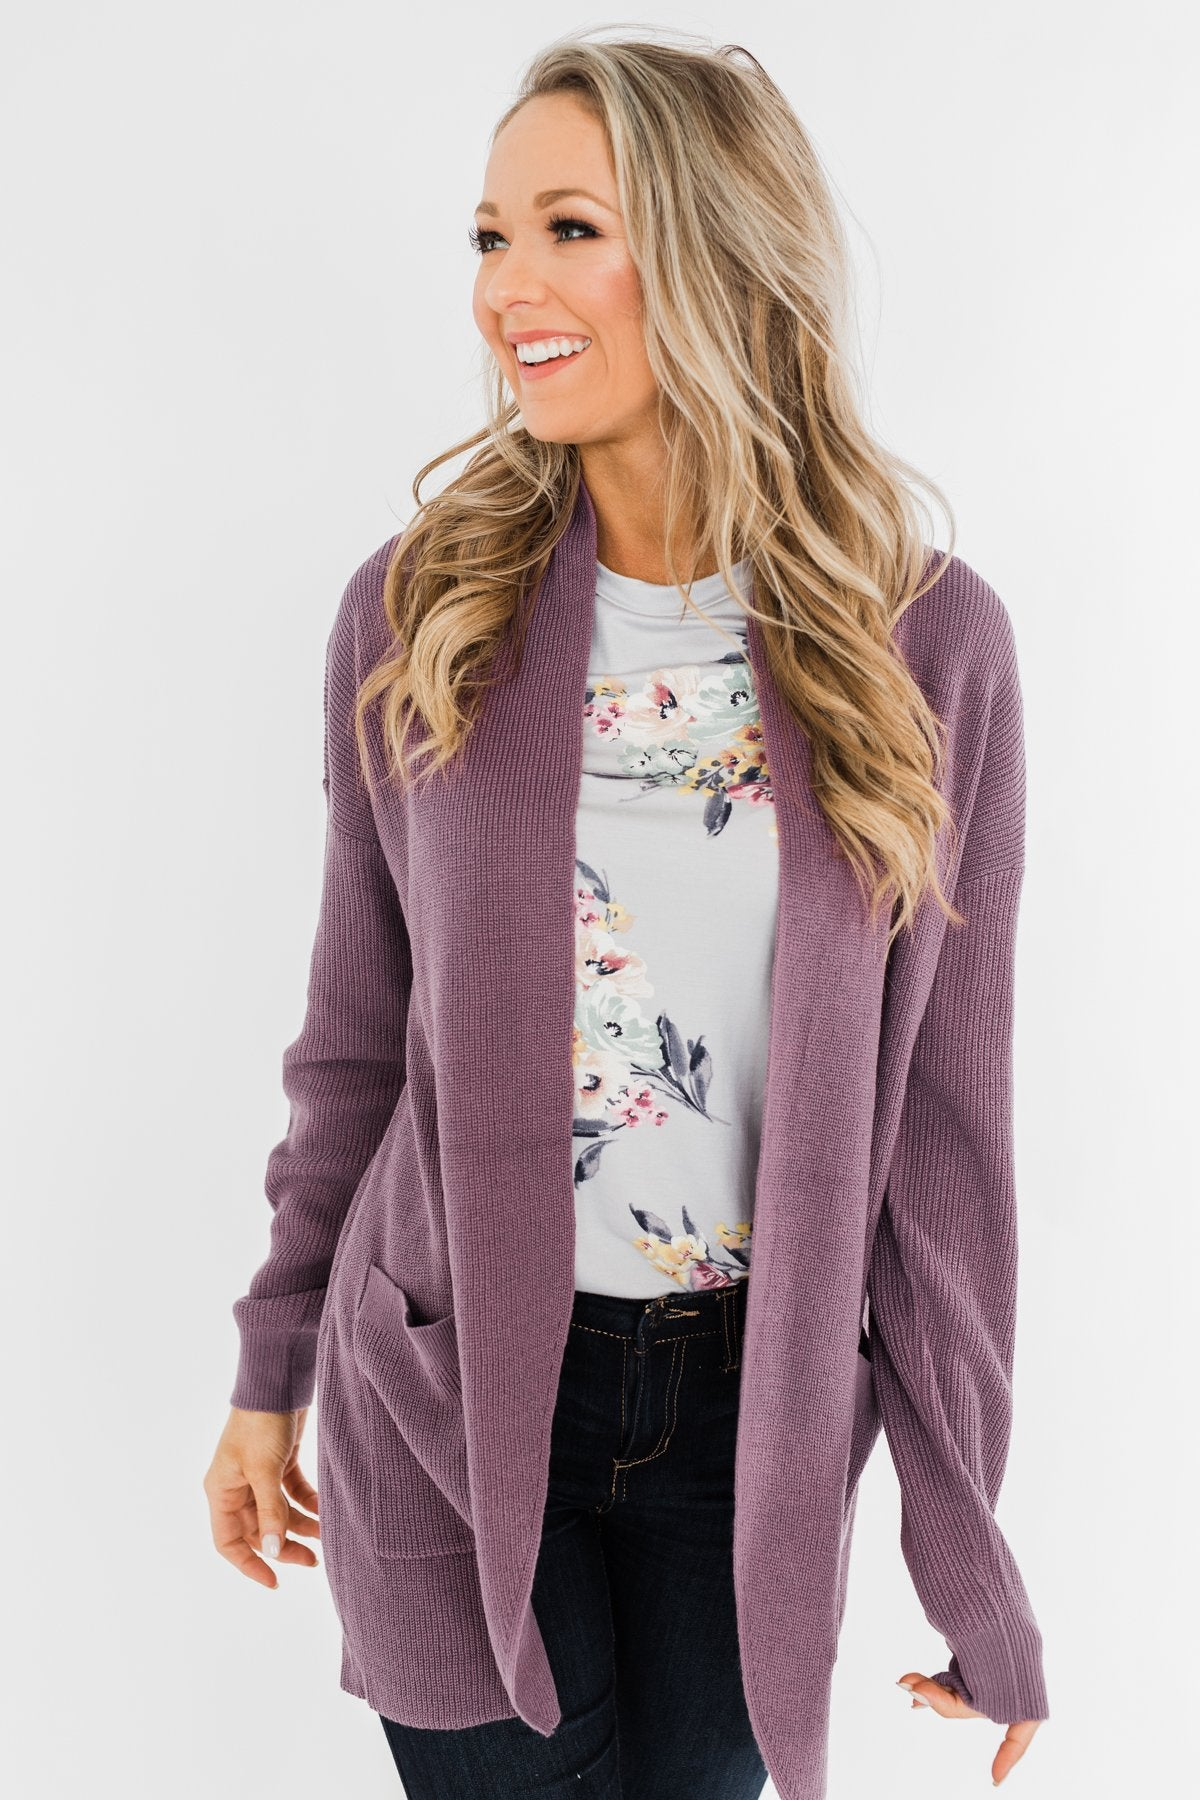 Share The Love Knit Cardigan- Dusty Eggplant